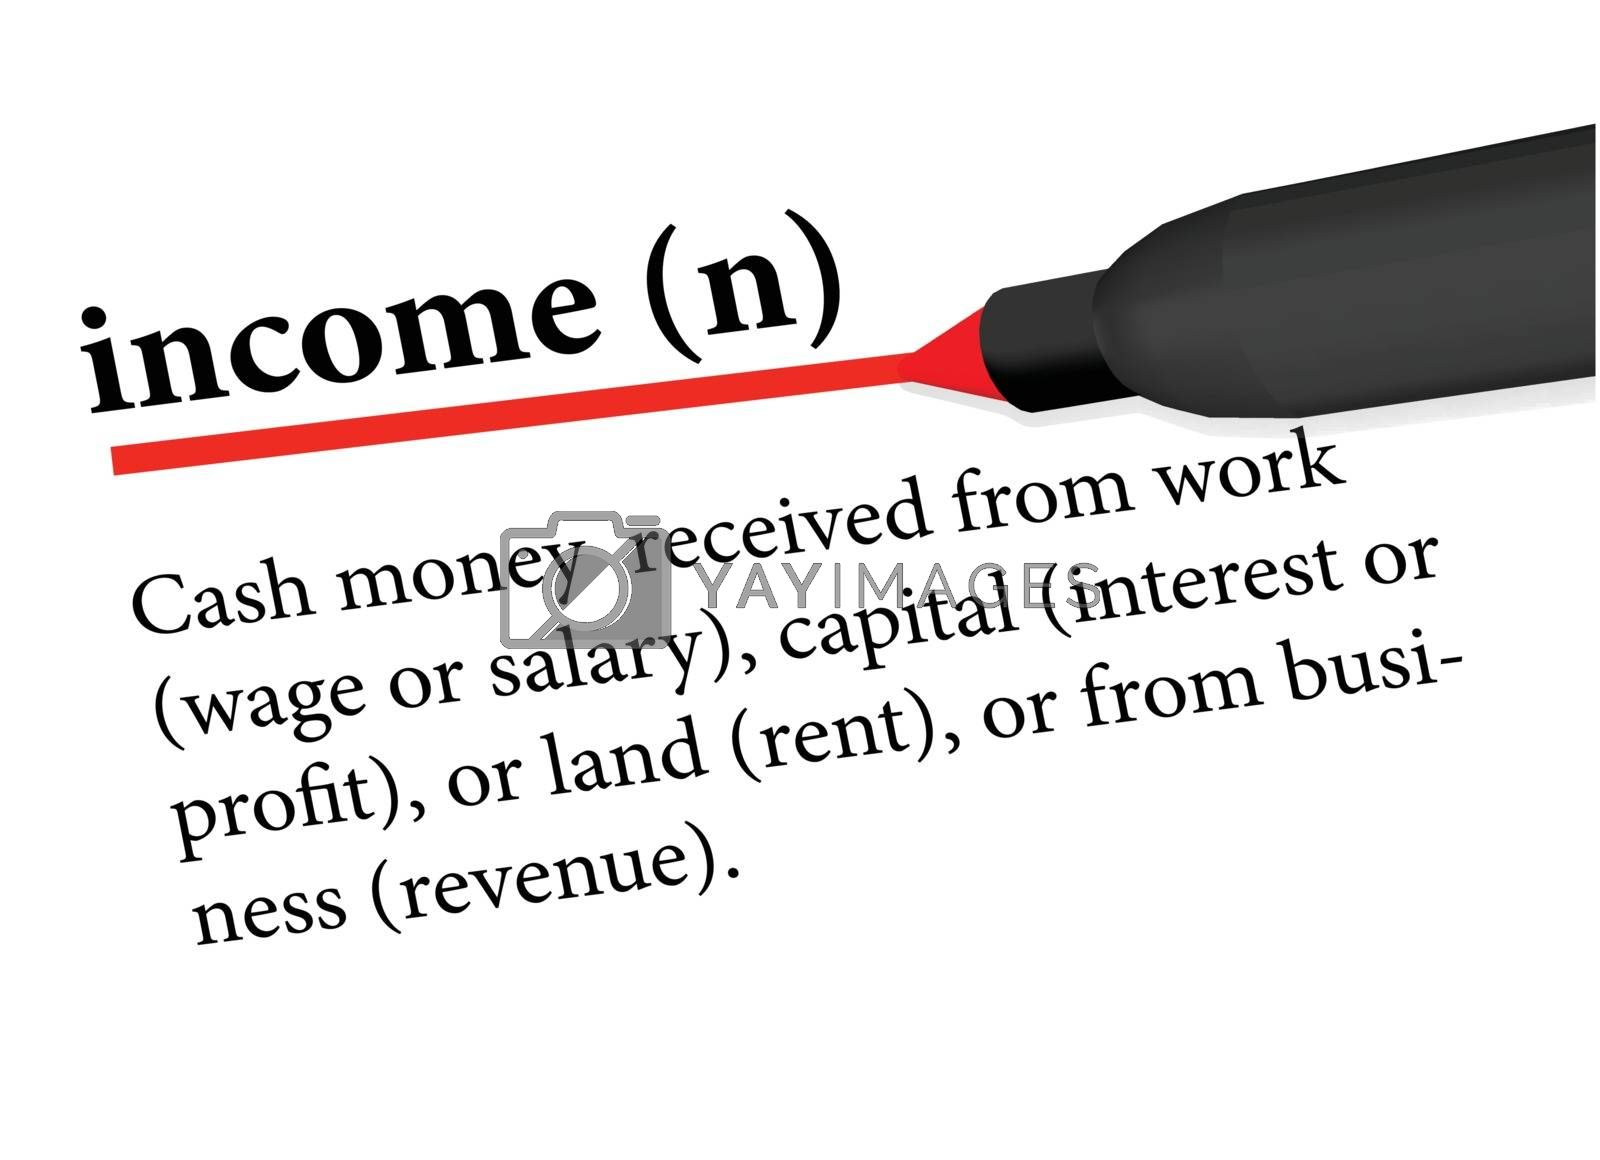 dictionary term of income isolated on white background by Istanbul2009